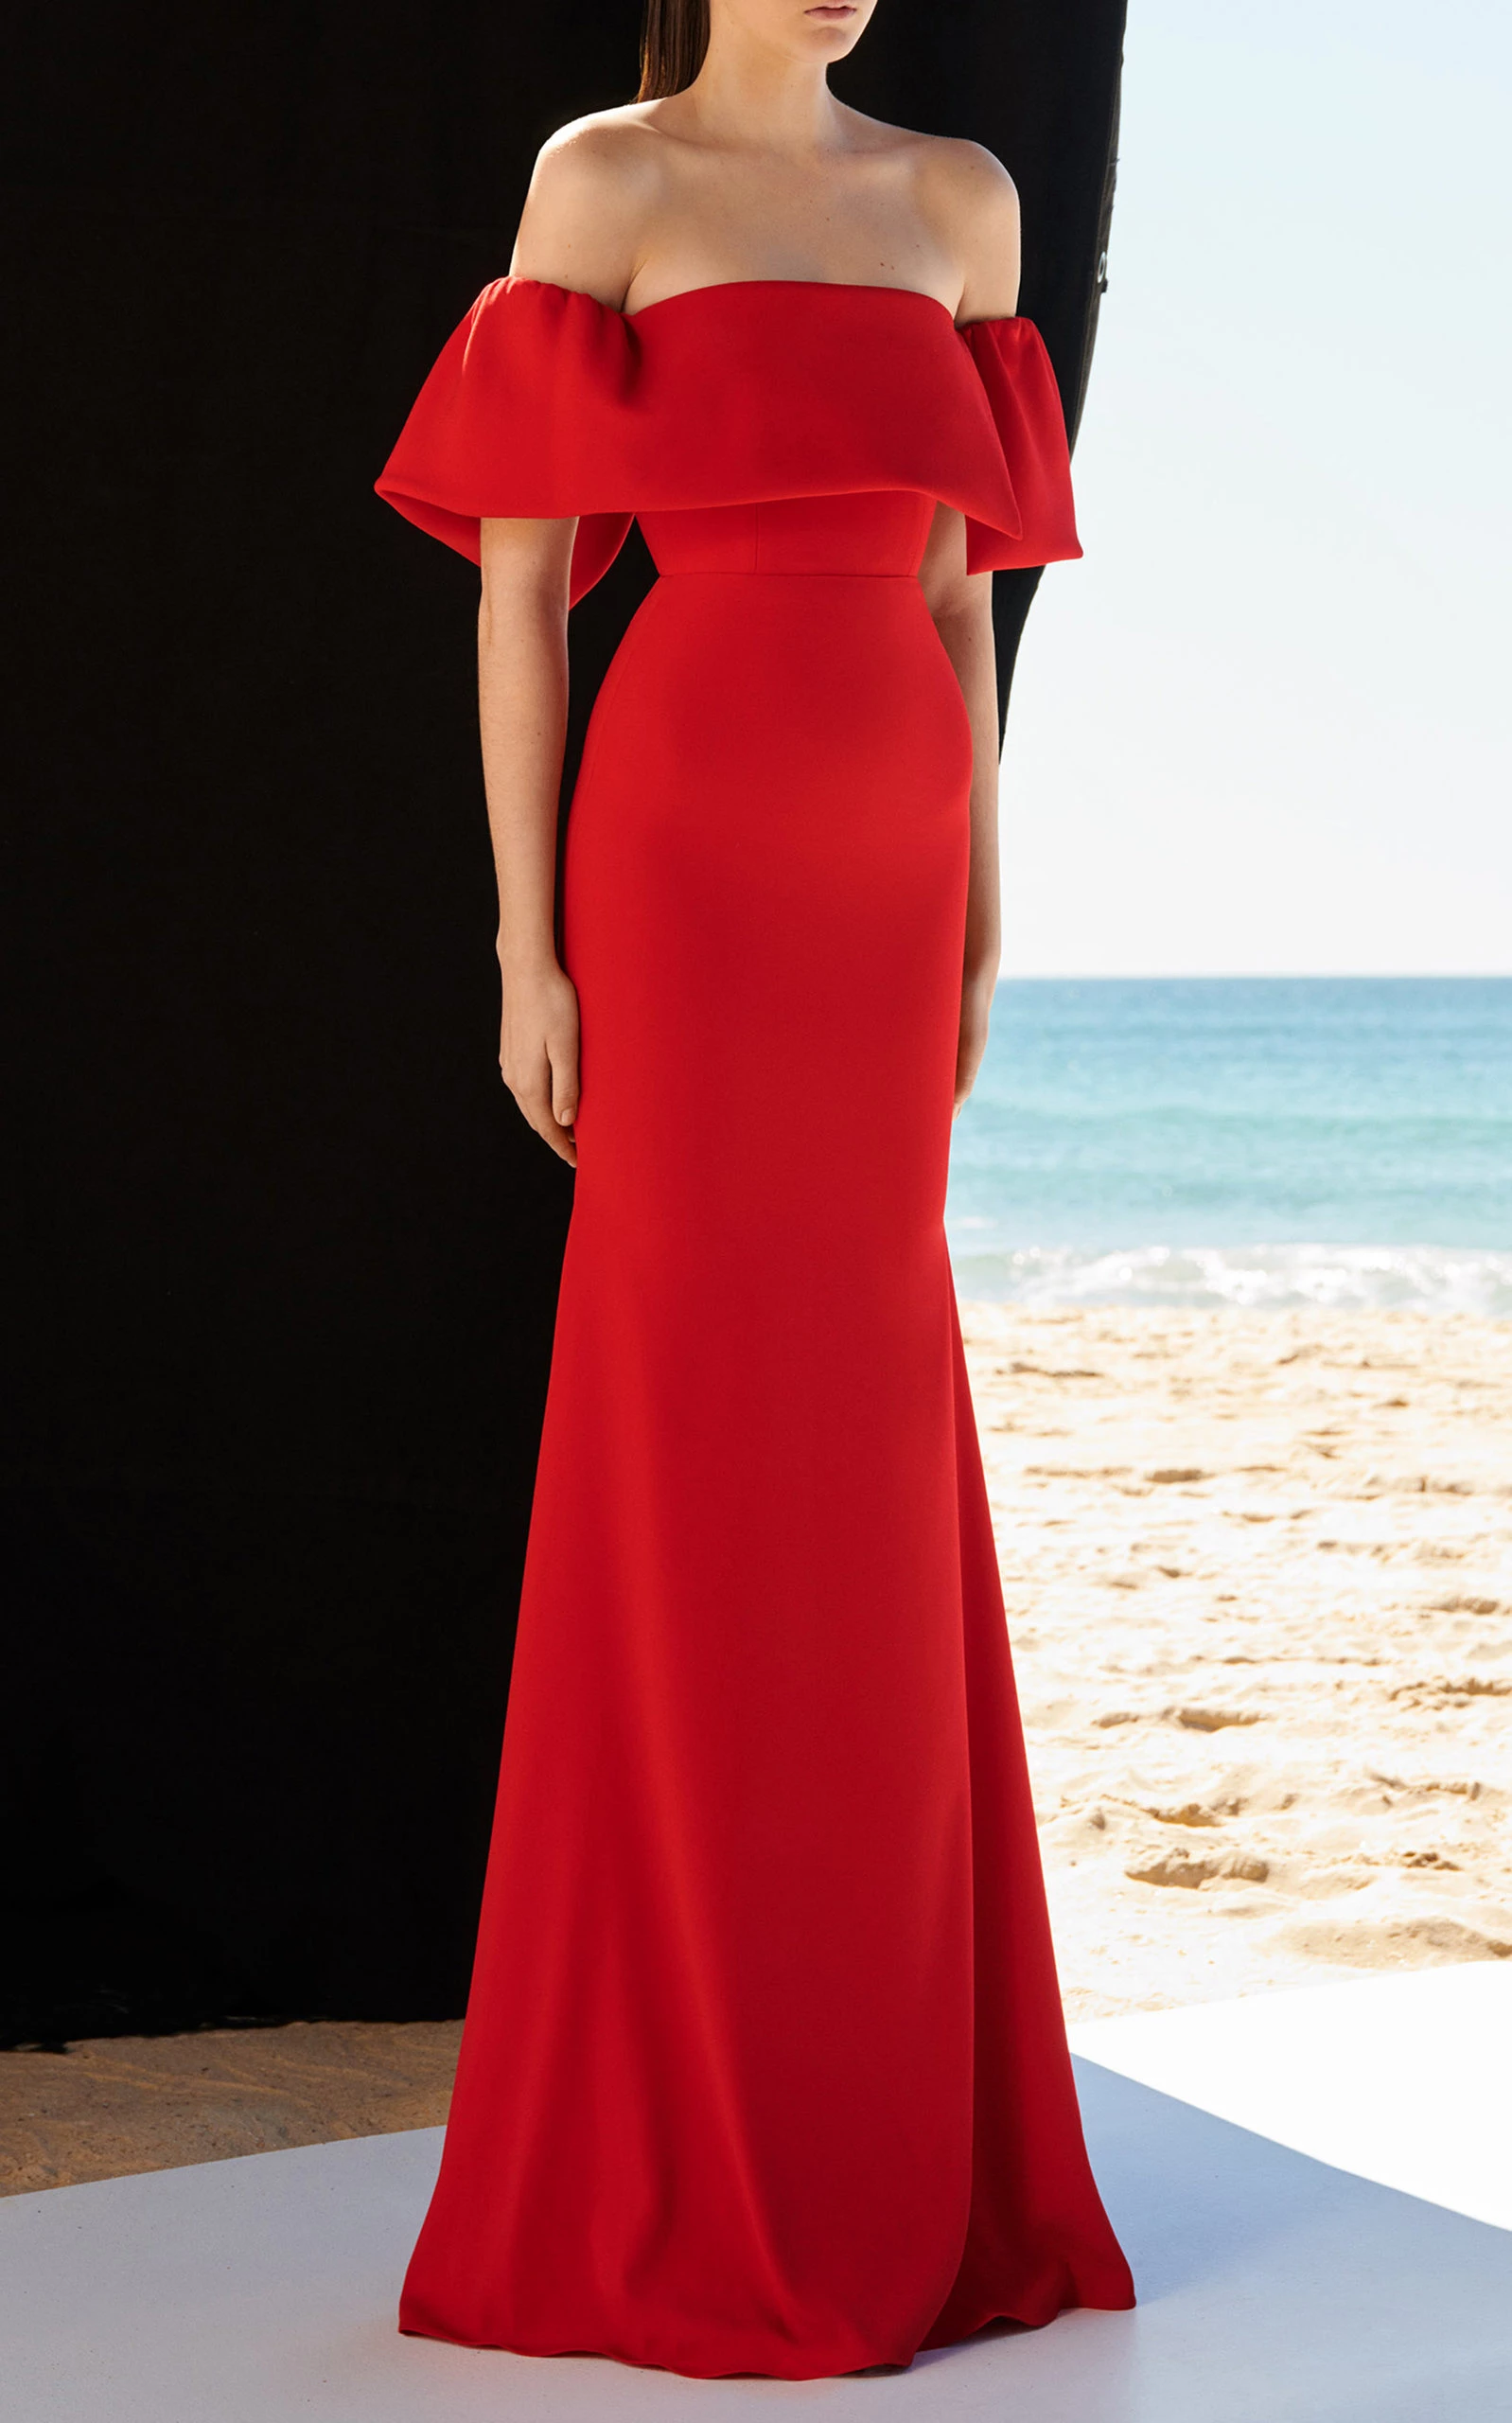 alex perry clemente satin crepe off shoulder gown d484 | red